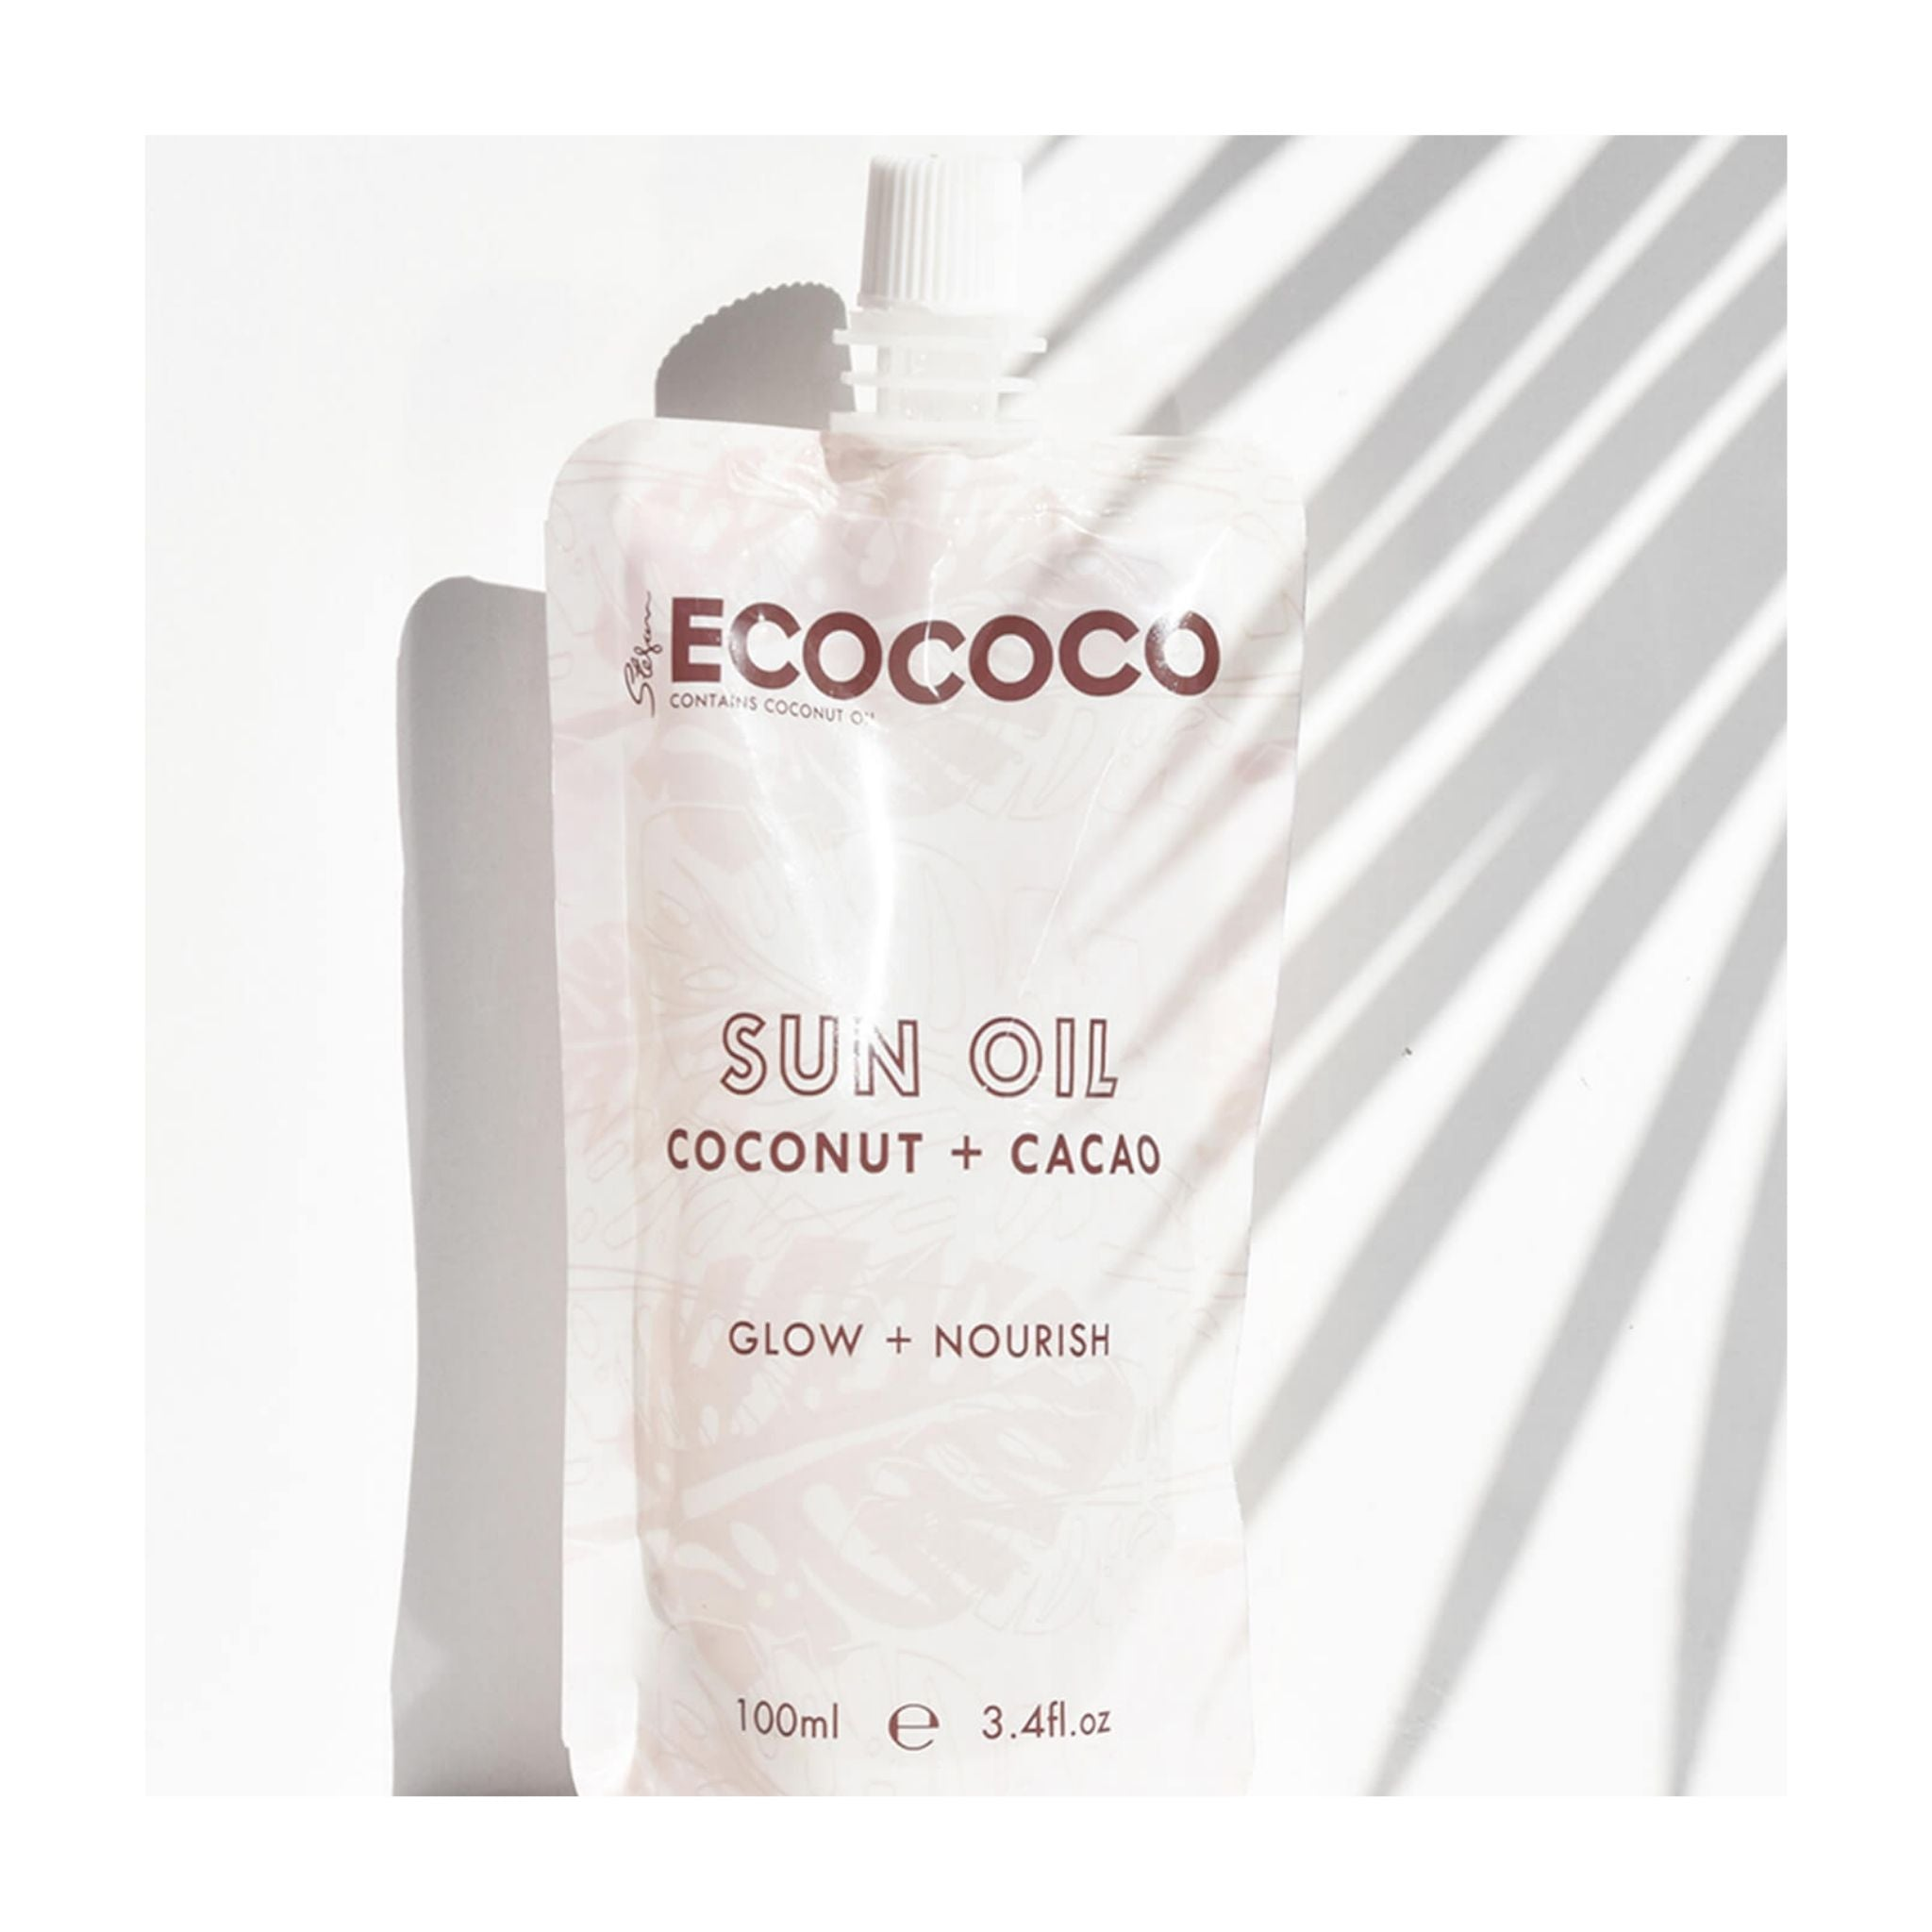 SUN OIL | COCONUT + COCAO